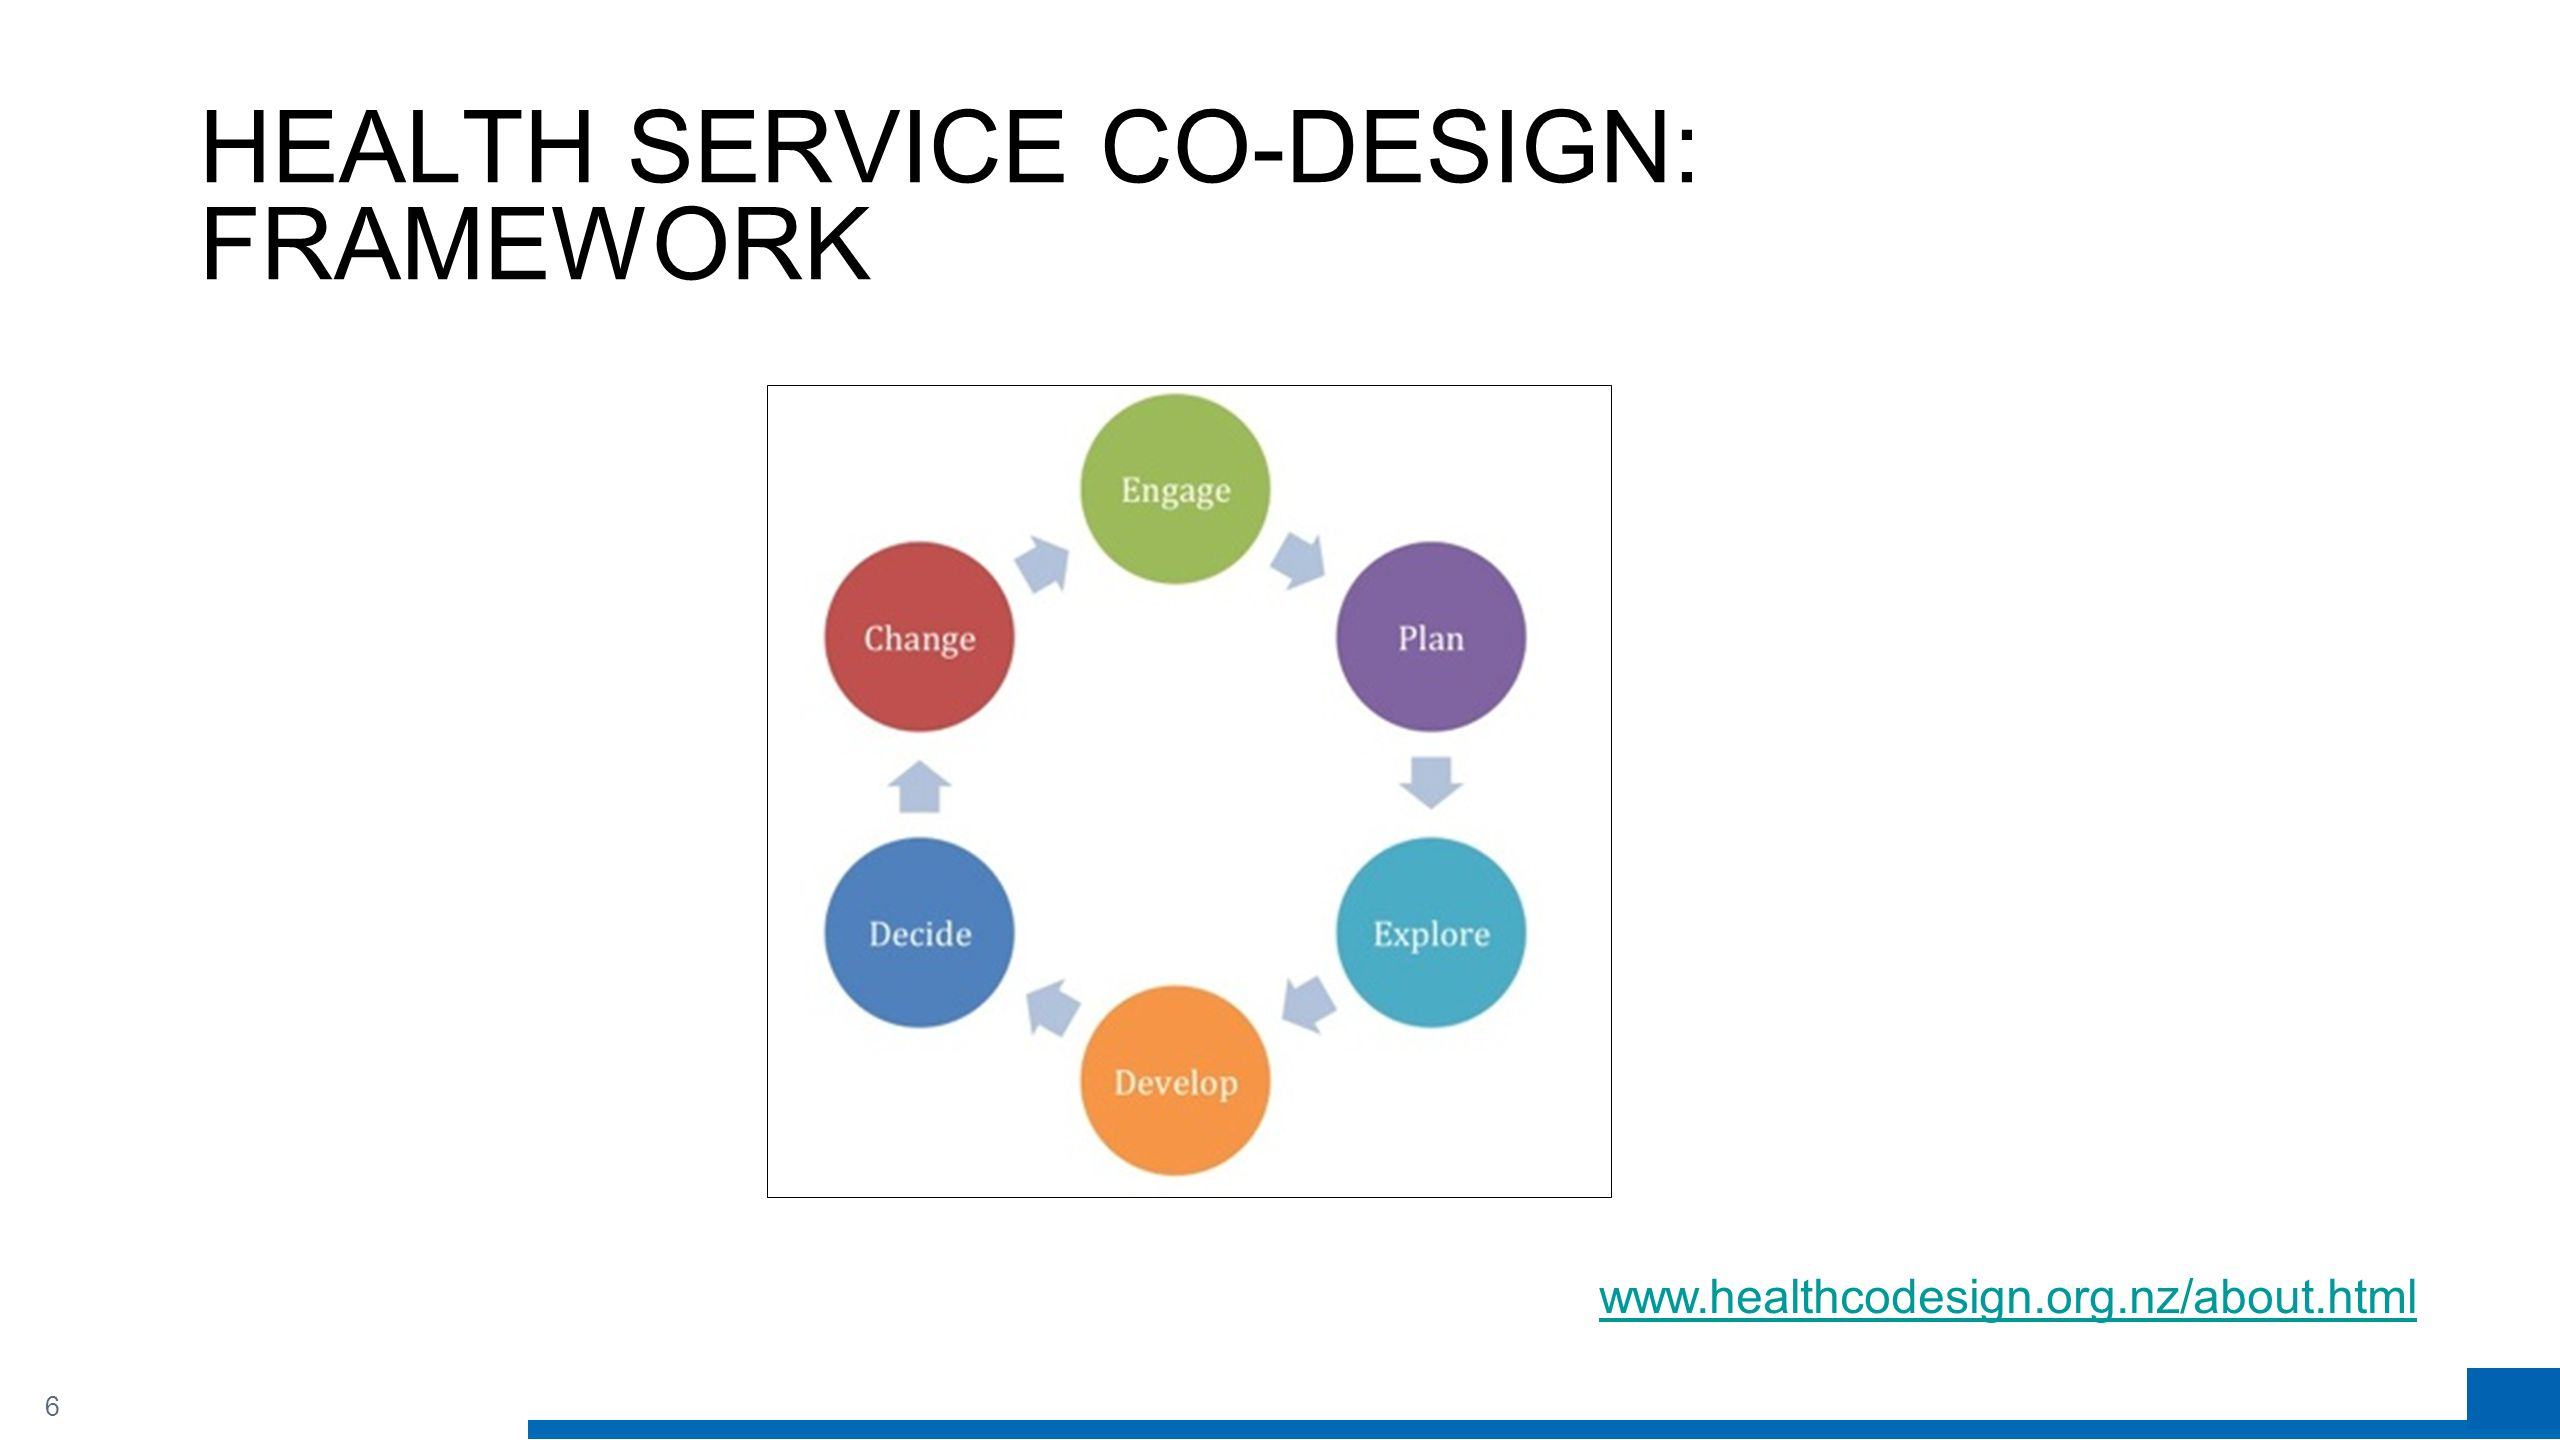 6 HEALTH SERVICE CO-DESIGN: FRAMEWORK www.healthcodesign.org.nz/about.html